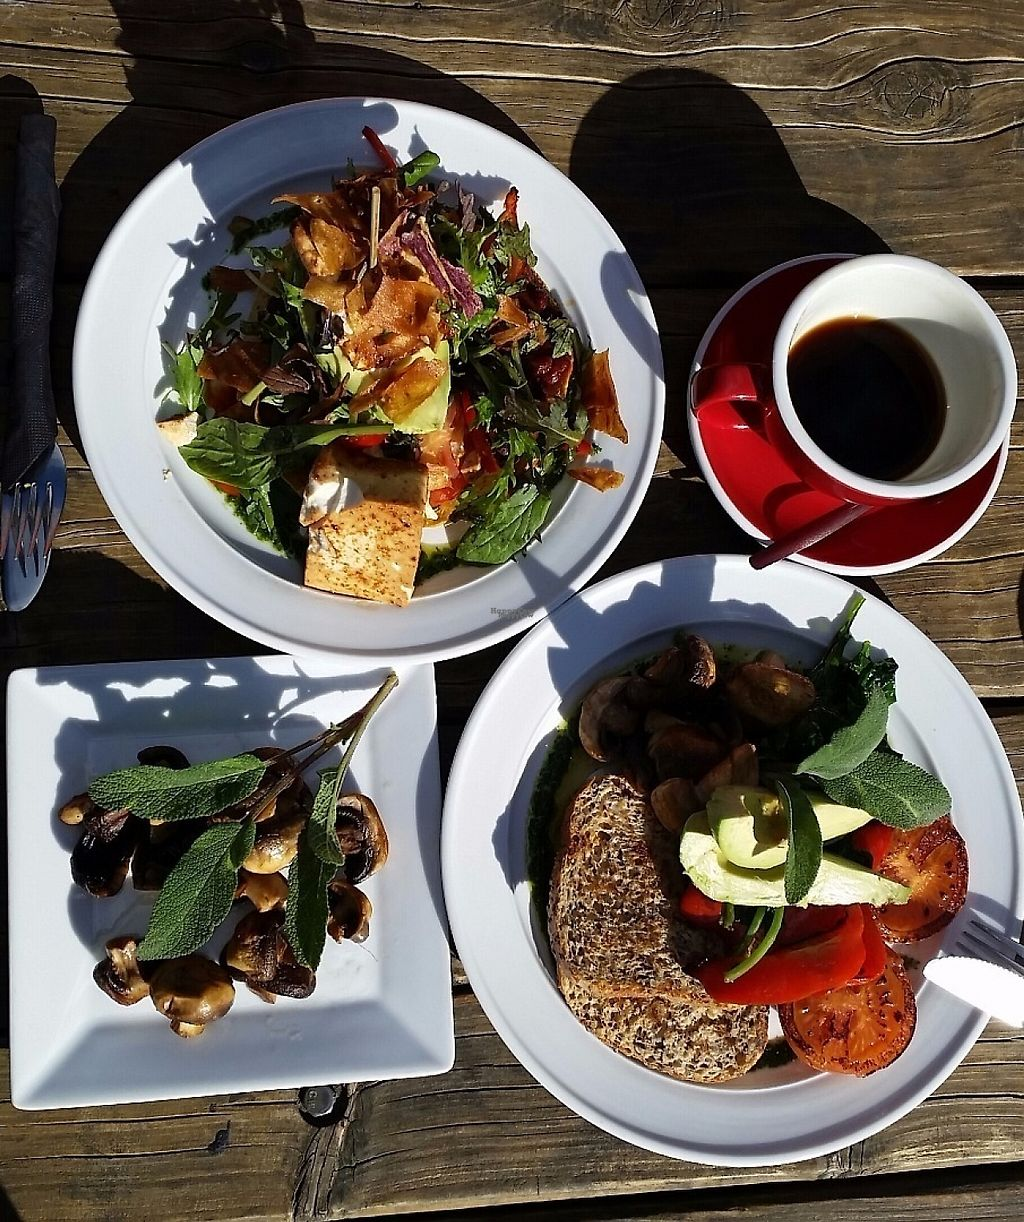 """Photo of Powerhouse Cafe  by <a href=""""/members/profile/AndyTheVWDude"""">AndyTheVWDude</a> <br/>Toasted Wholegrain Bread & Huveos Rancheros with a side of Mushrooms <br/> November 19, 2016  - <a href='/contact/abuse/image/82934/191968'>Report</a>"""